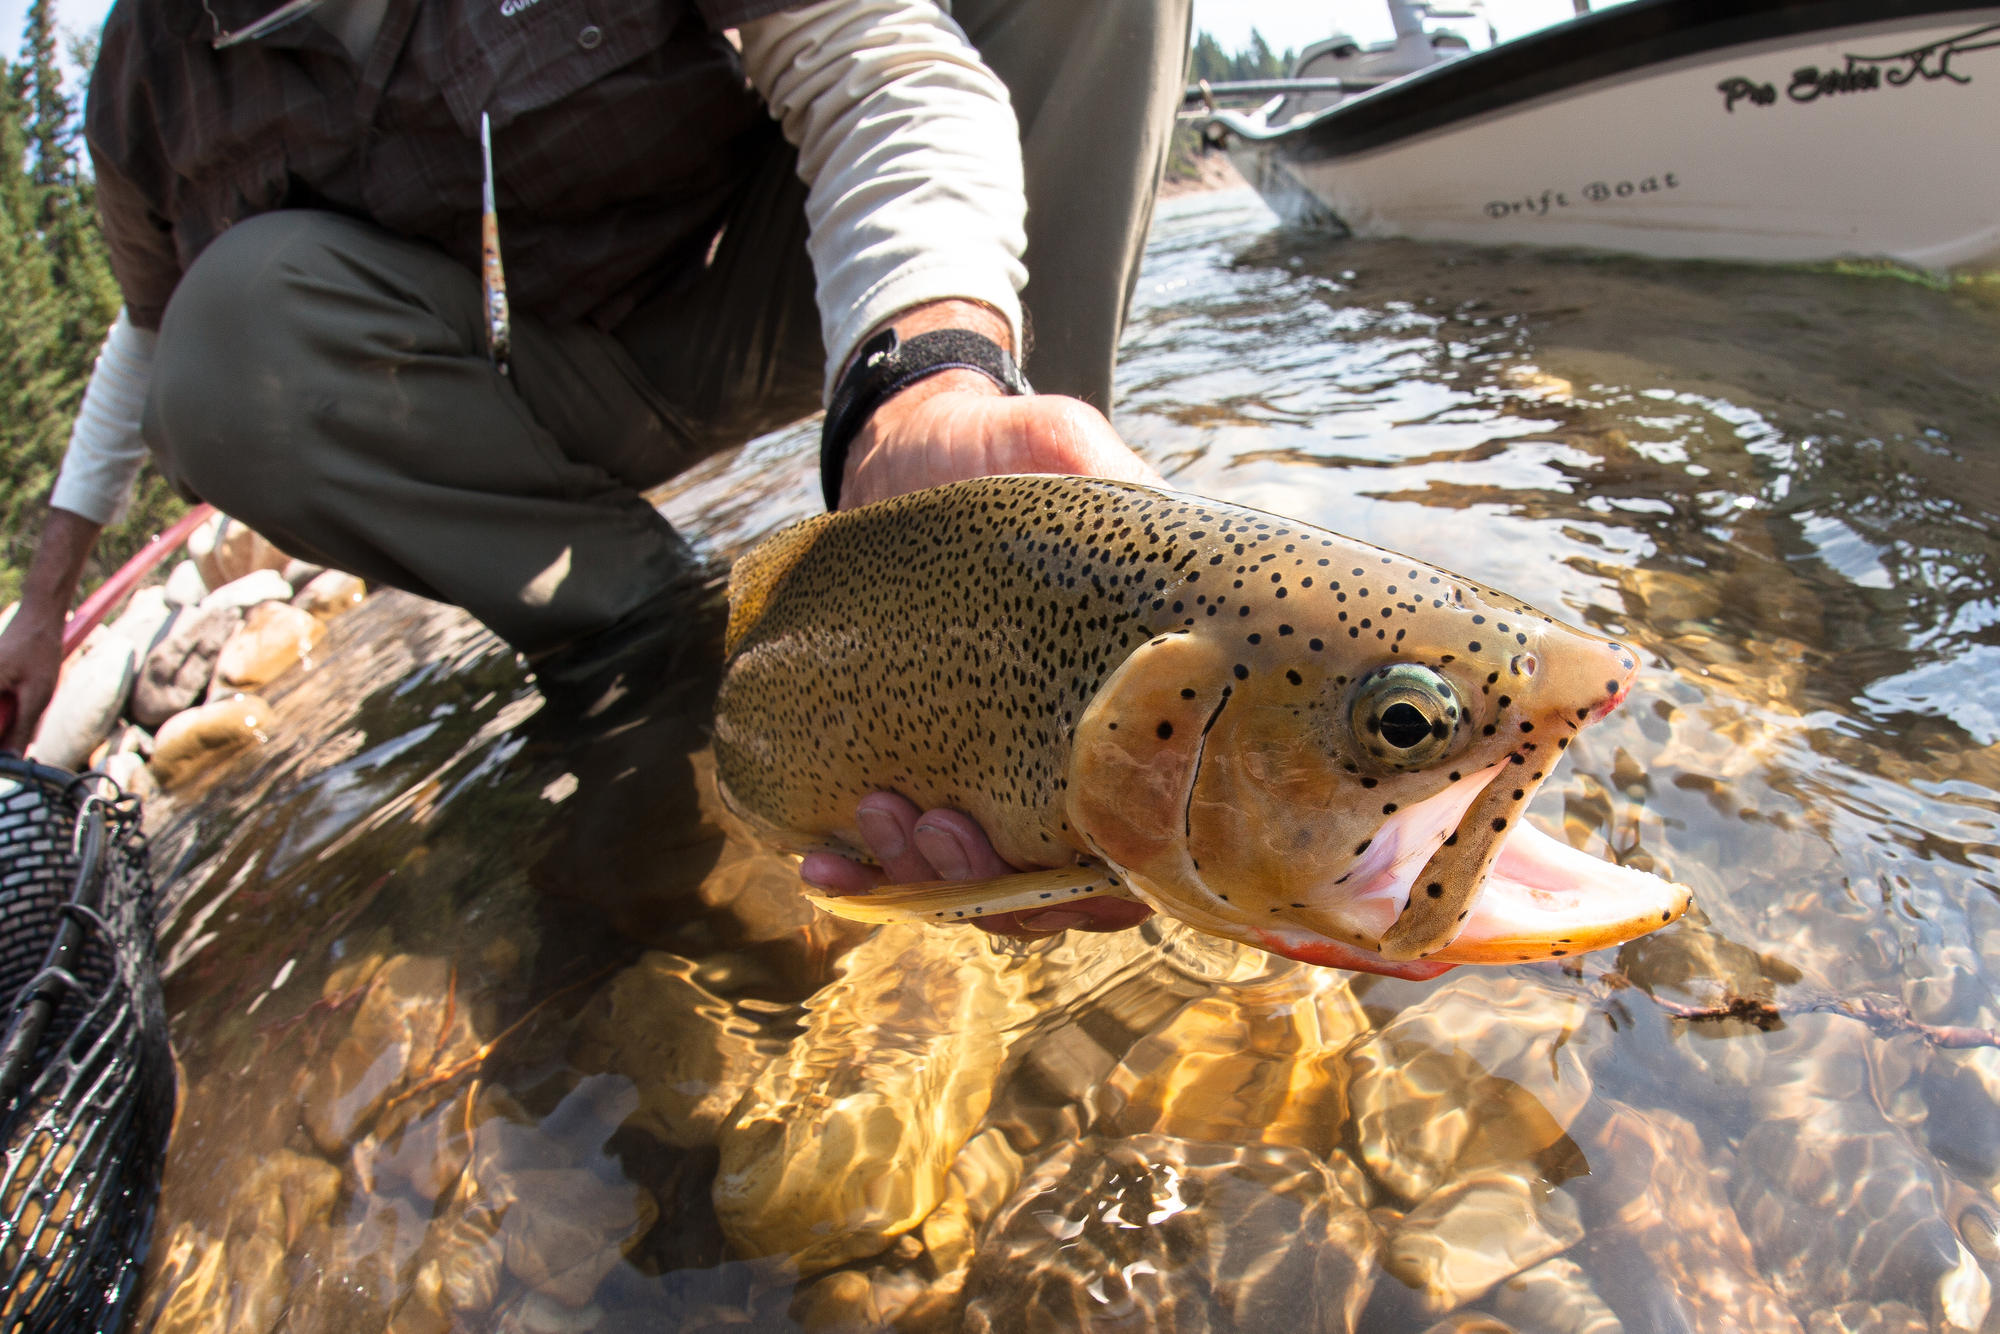 (1/4) Exceeding the Elk in its beauty are only its cutthroat, impossibly handsome, pepper-spotted fish hued in all manner of yellow, gold, orange and red. Virtually every fish that comes to hand is a sight to behold. These rivers simply don't breed duds.